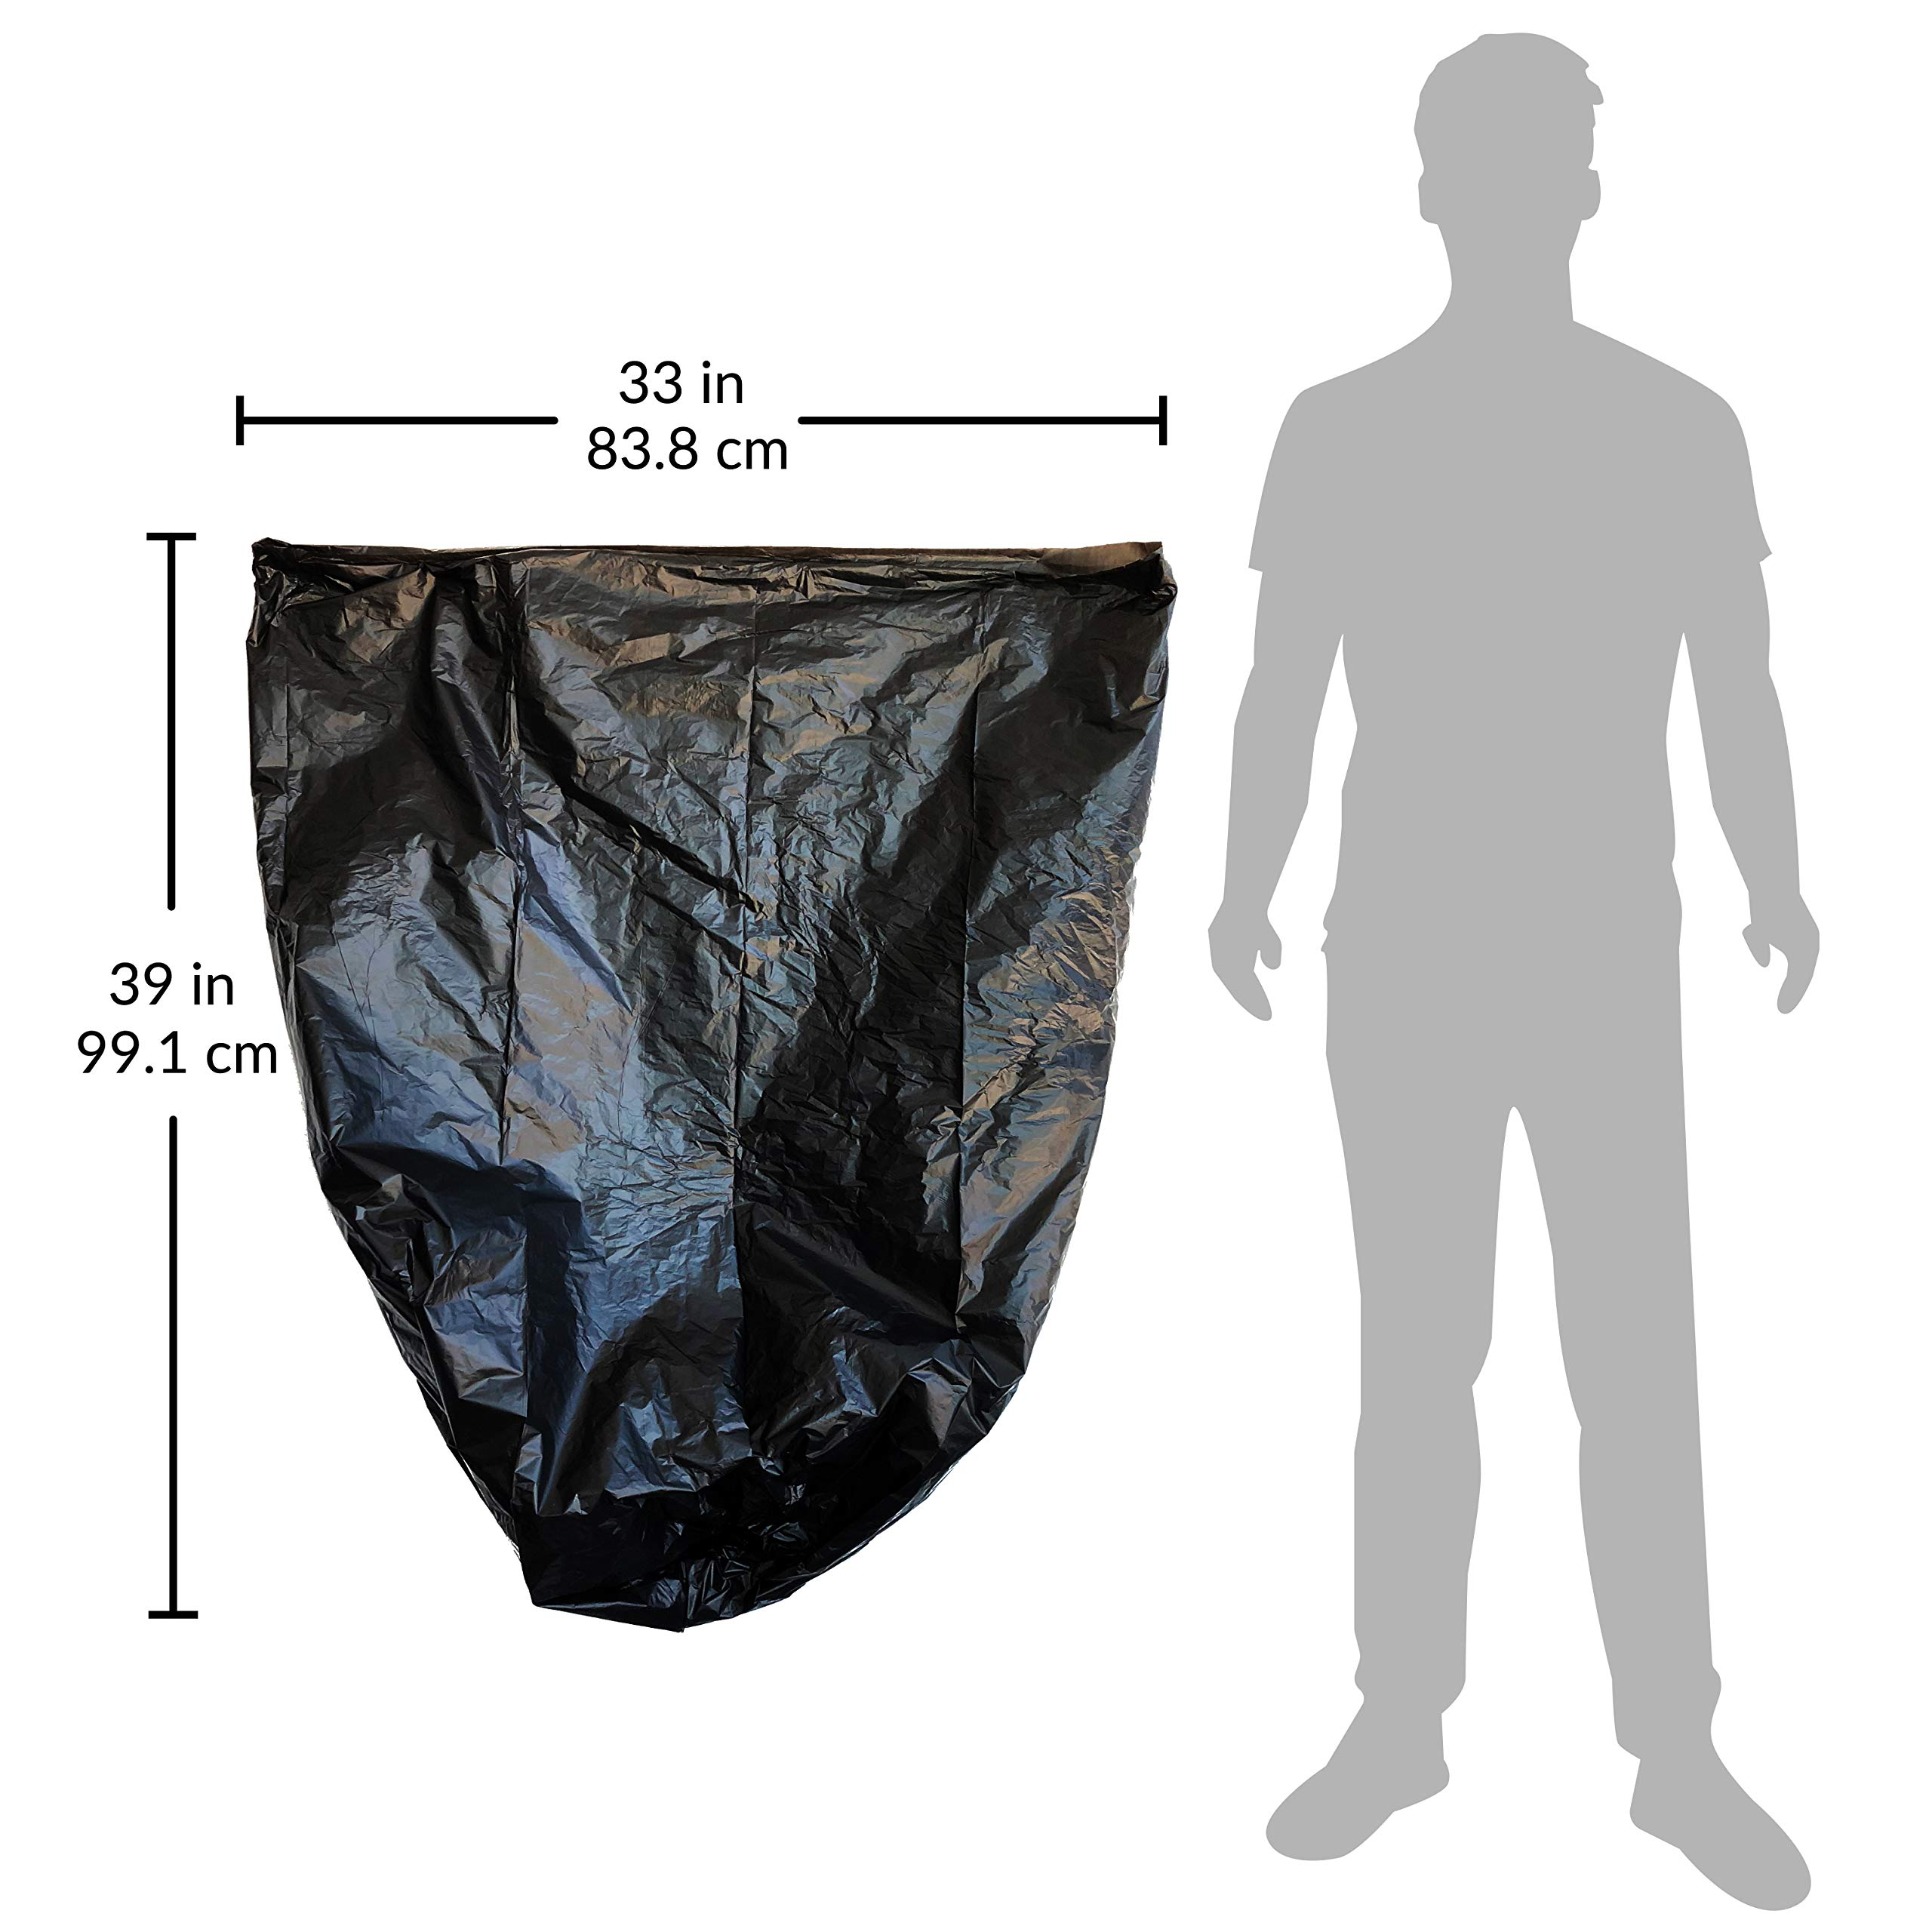 Reli. Recyclable Eco-Friendly Trash Bags, 33 Gallon (150 Count) - Made from Recycled Content (SCS Certified) - Go Green Canliners - Environment-Friendly Garbage Bags (30 Gallon - 35 Gallon) (Black) by Reli. (Image #4)